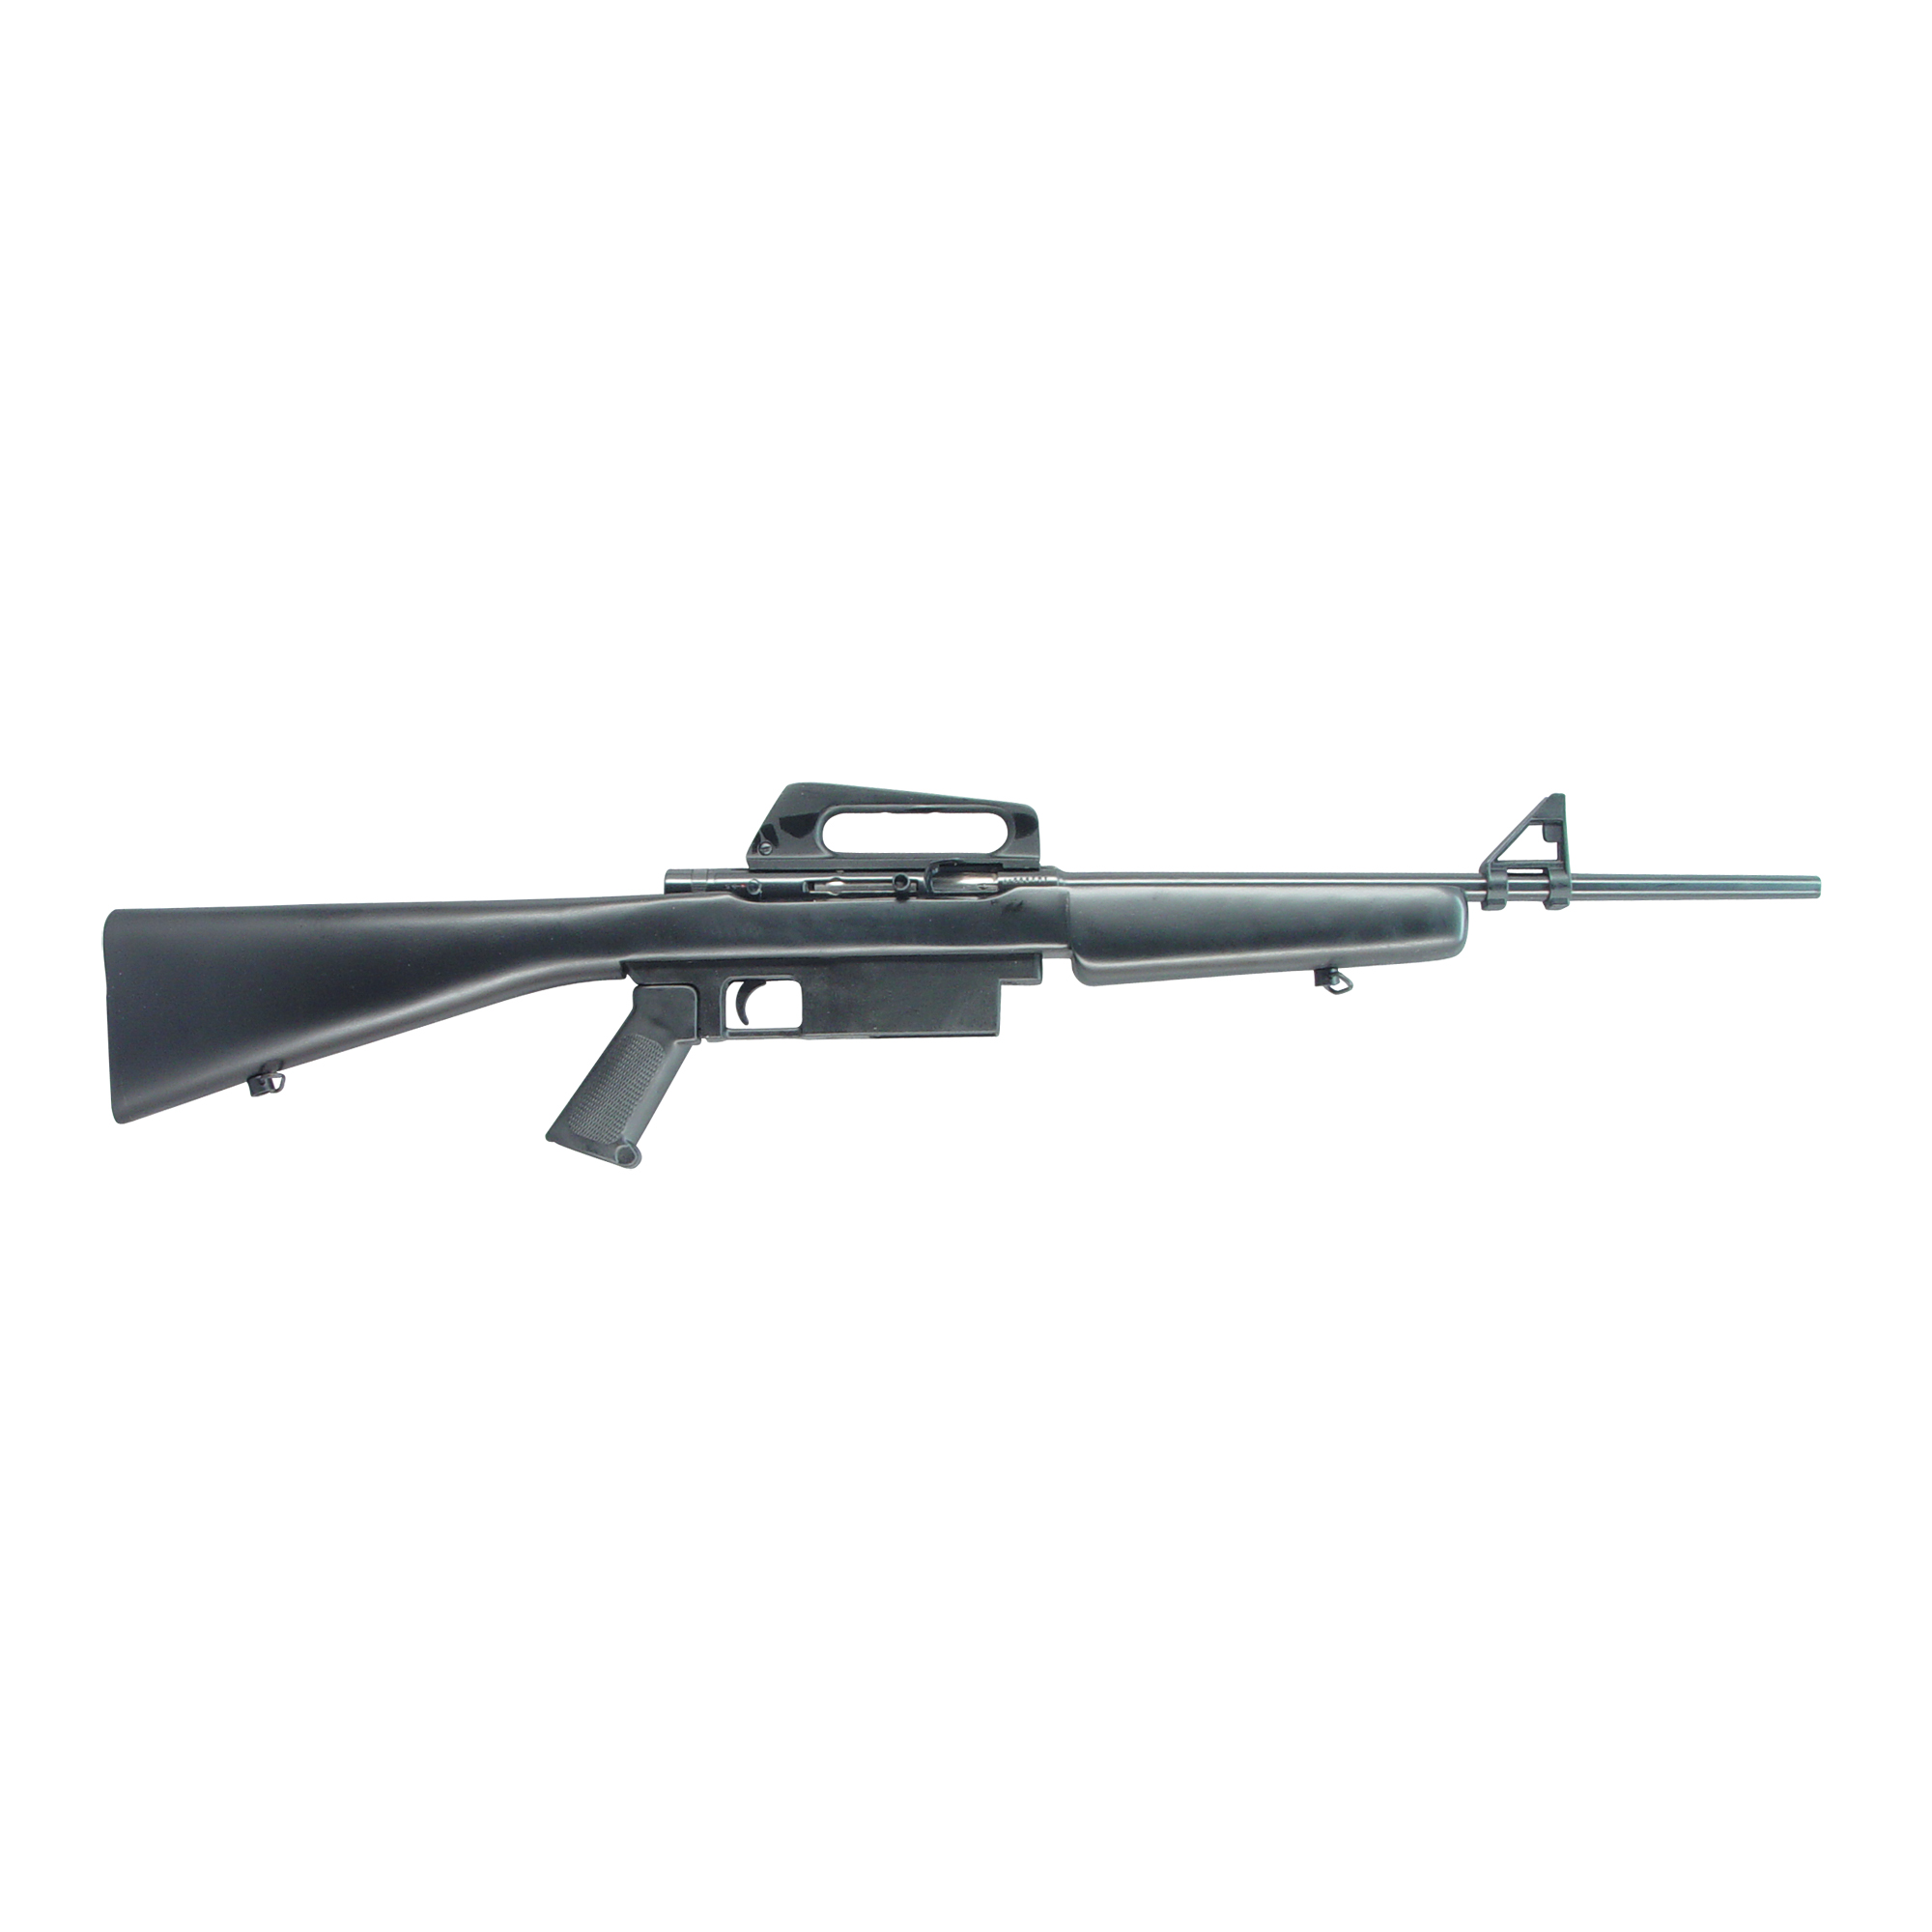 """The M1600 Semi Automatic rifle is an AR15 style 22LR tactical rifle. The M1600 is suppressor-ready and includes a rear peep sight"""" A2 style front sight and pistol grip."""